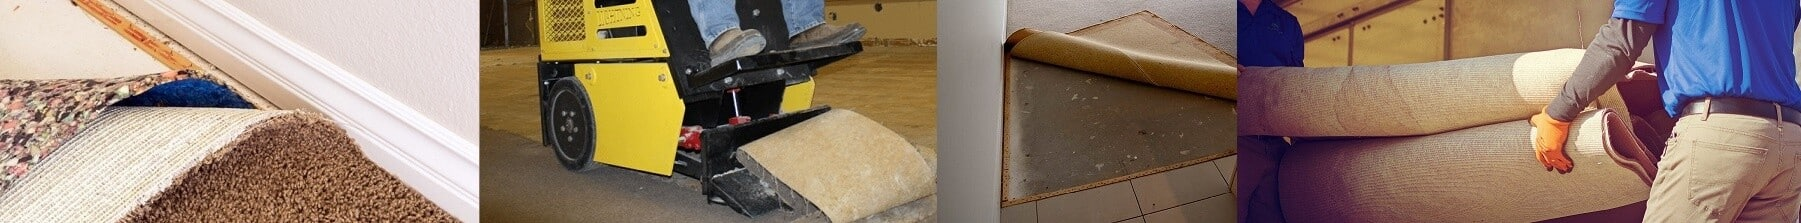 Carpet Removal Sydney (Carpet Removal Service Tiled)